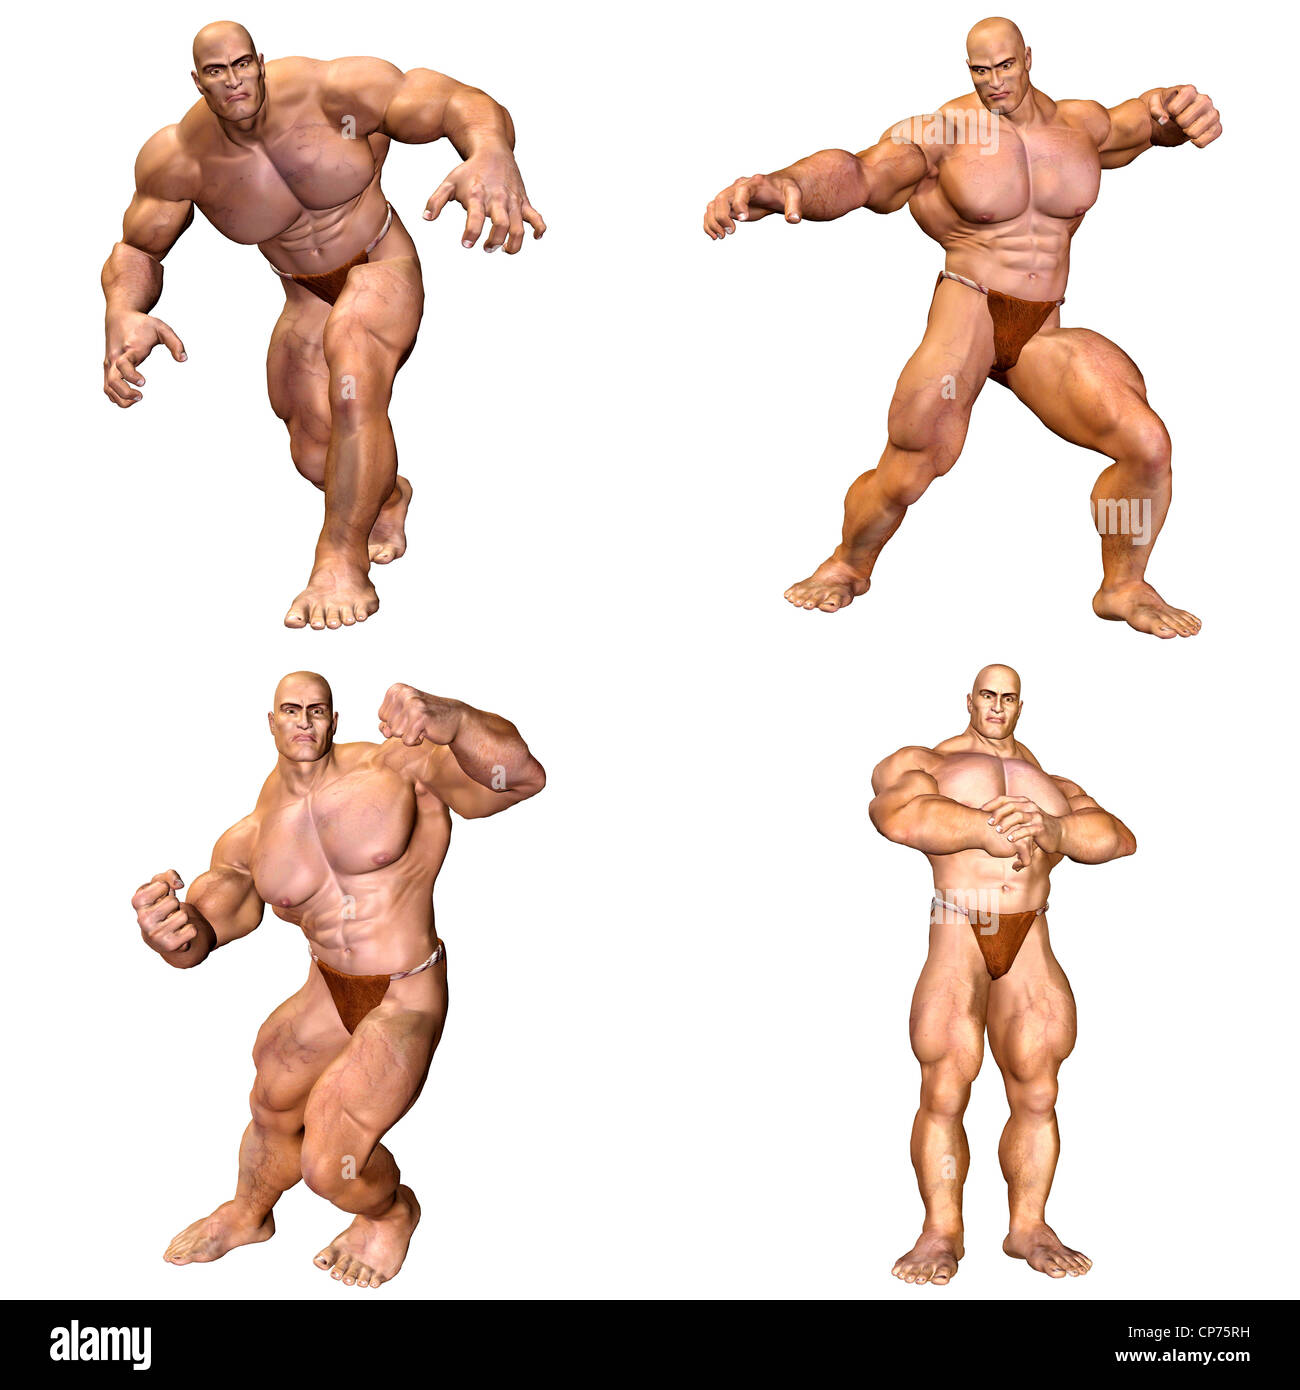 Illustration Of A Pack Of Four 4 Muscular Men With Different Poses Stock Photo Alamy